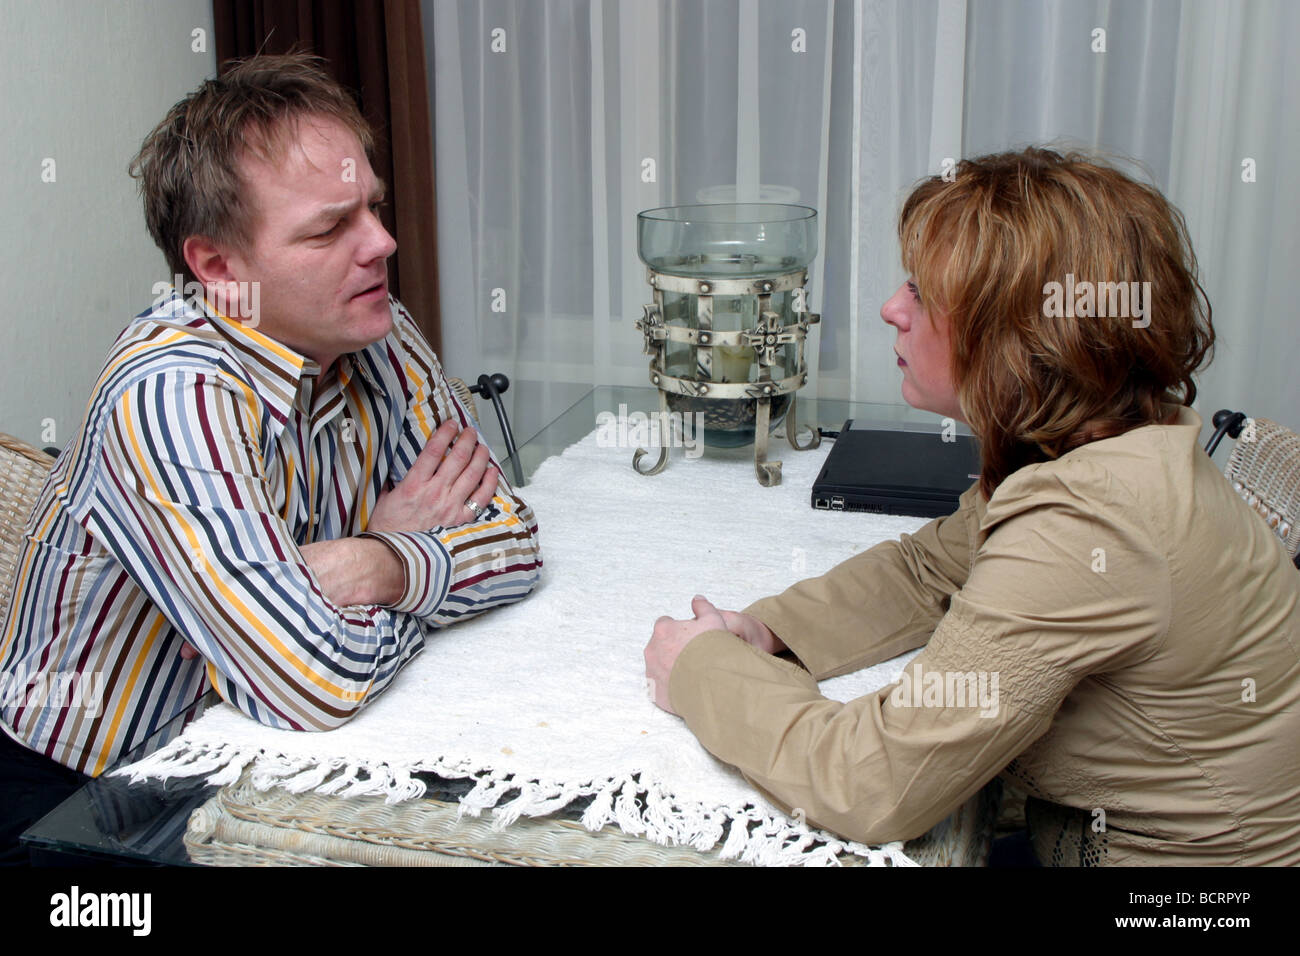 Husband and wife talking seriously, having an argument, coping difficulties, might be divorce. Stock Photo